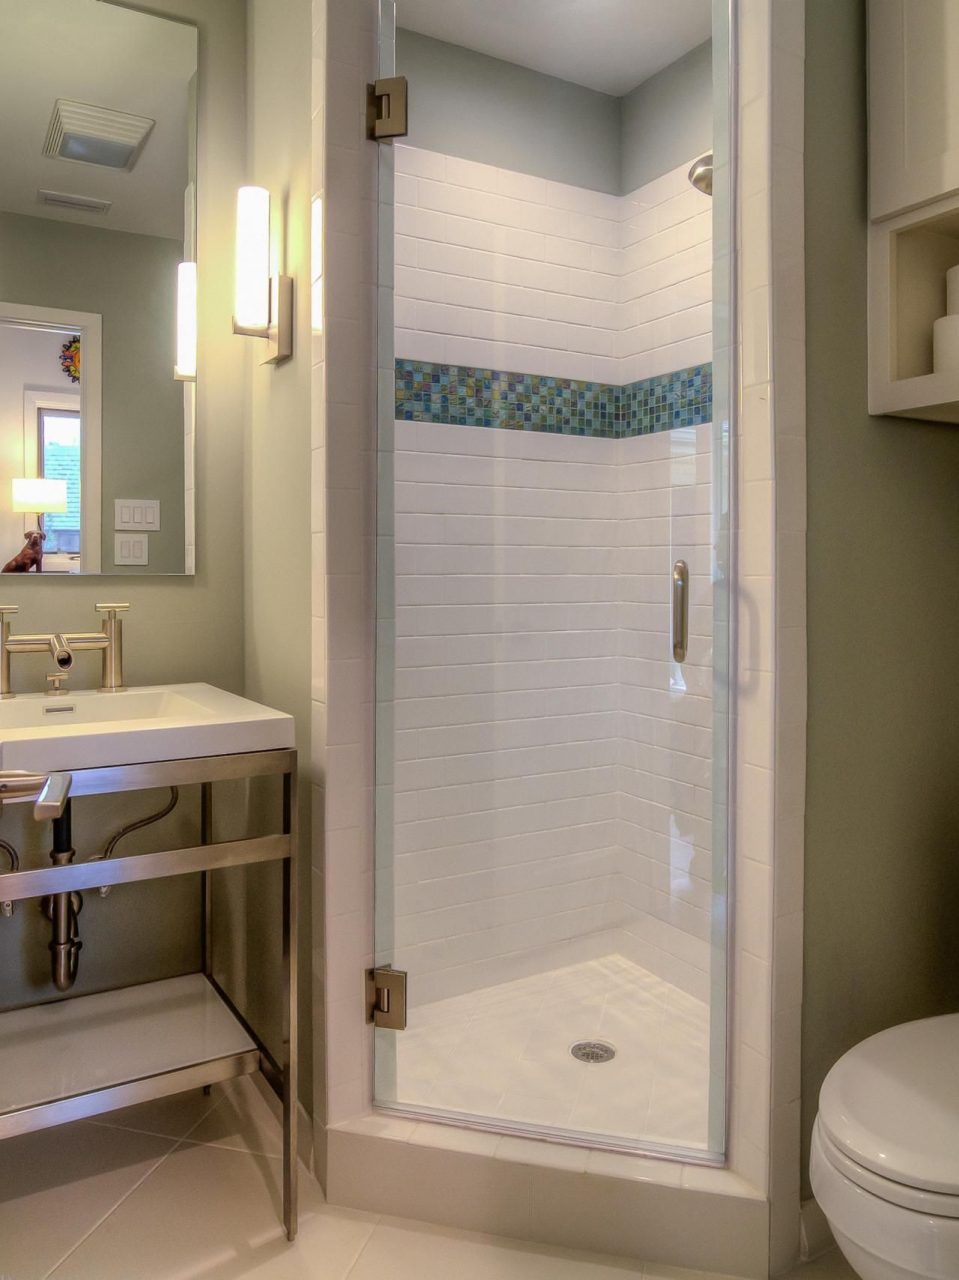 A Stall Shower Fits Perfectly In The Corner Of This Small Bathroom